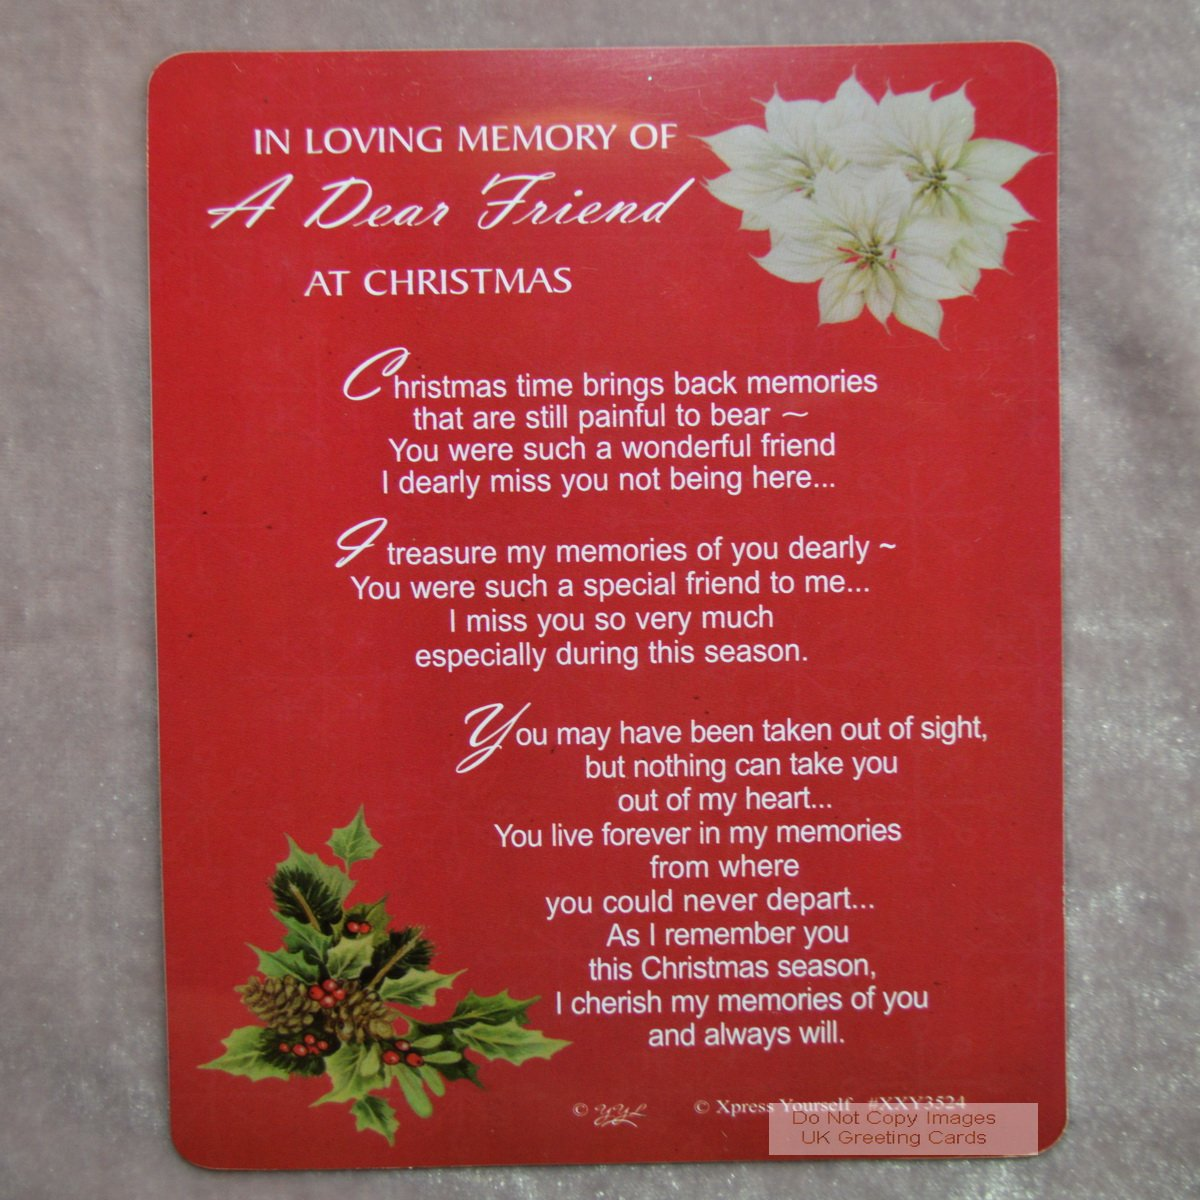 Graveside memorial christmas card holder in loving memory of a graveside memorial christmas card holder in loving memory of a dear friend 3524 amazon kitchen home kristyandbryce Choice Image